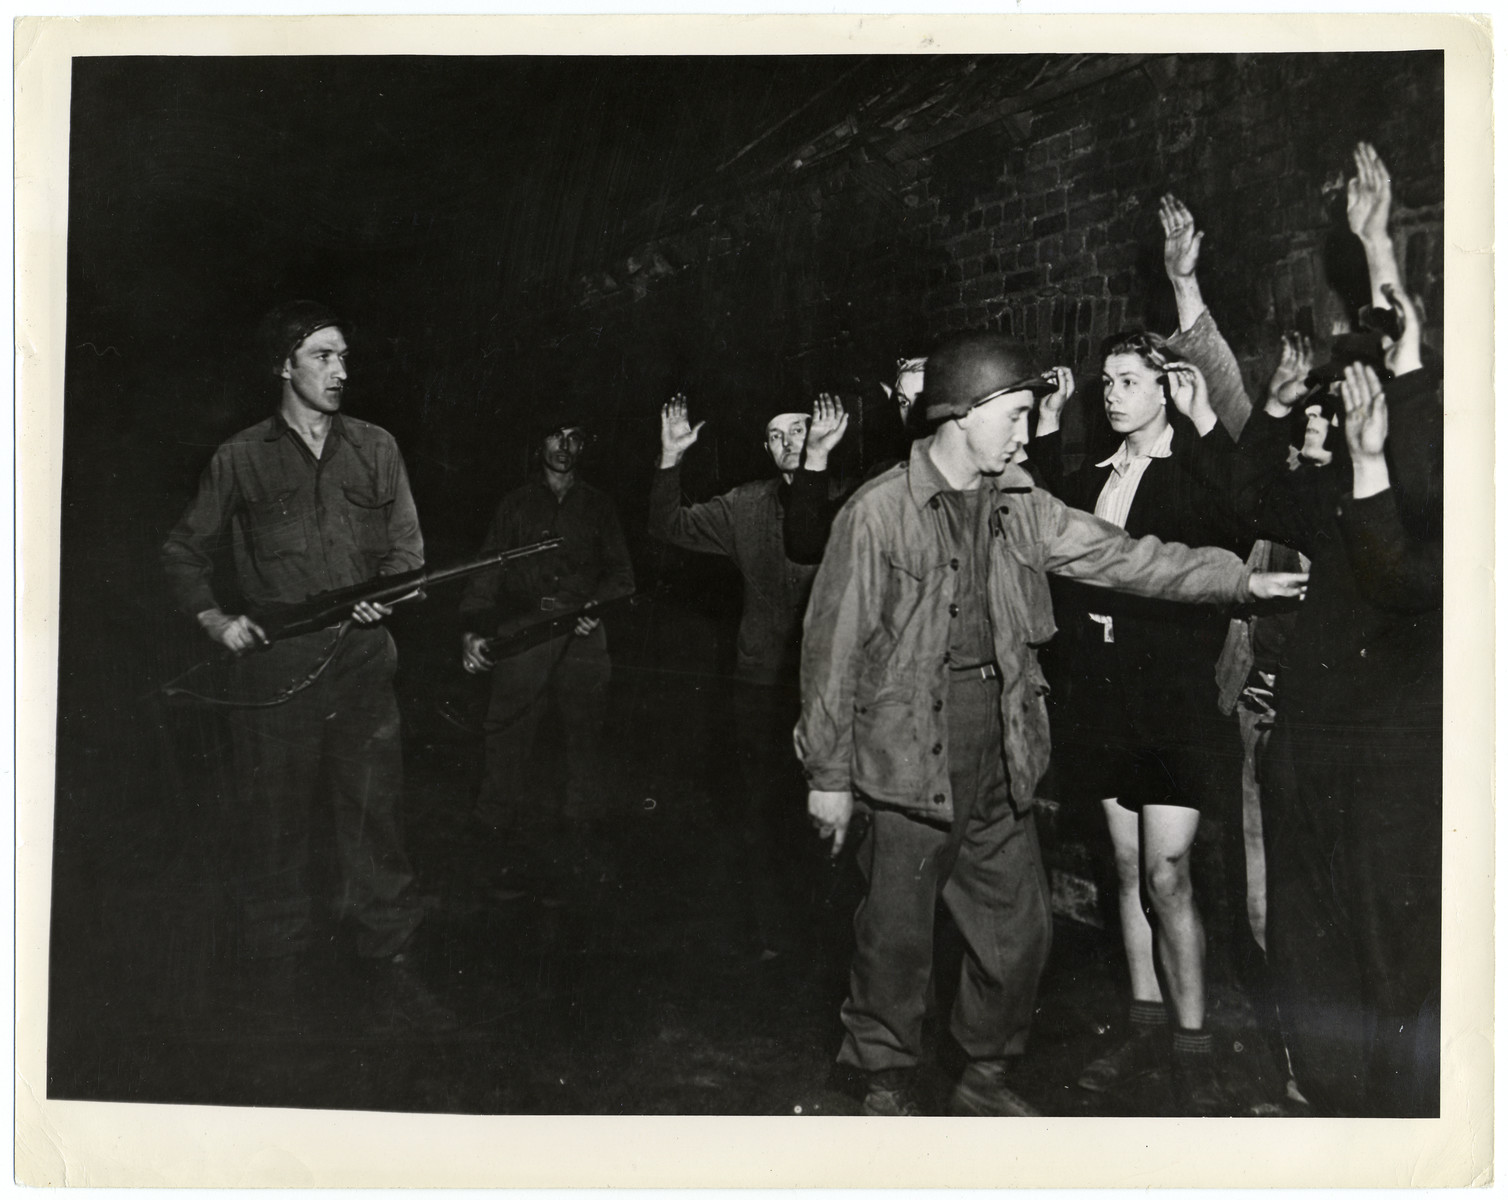 Sergeant Paul Campbell (foreground) of Johnstown, Pennsylvania, accompanied by two infantrymen, searches lined-up civilians in Recklinghausen, Germany for concealed weapons April, 26,1945.   They are looking for a Nazi sniper who fired on a Ninth U.S Army soldier. Recklinghausen, a Ruhr town 23 miles northeast of Duisburg, was captured April 3. [original caption]